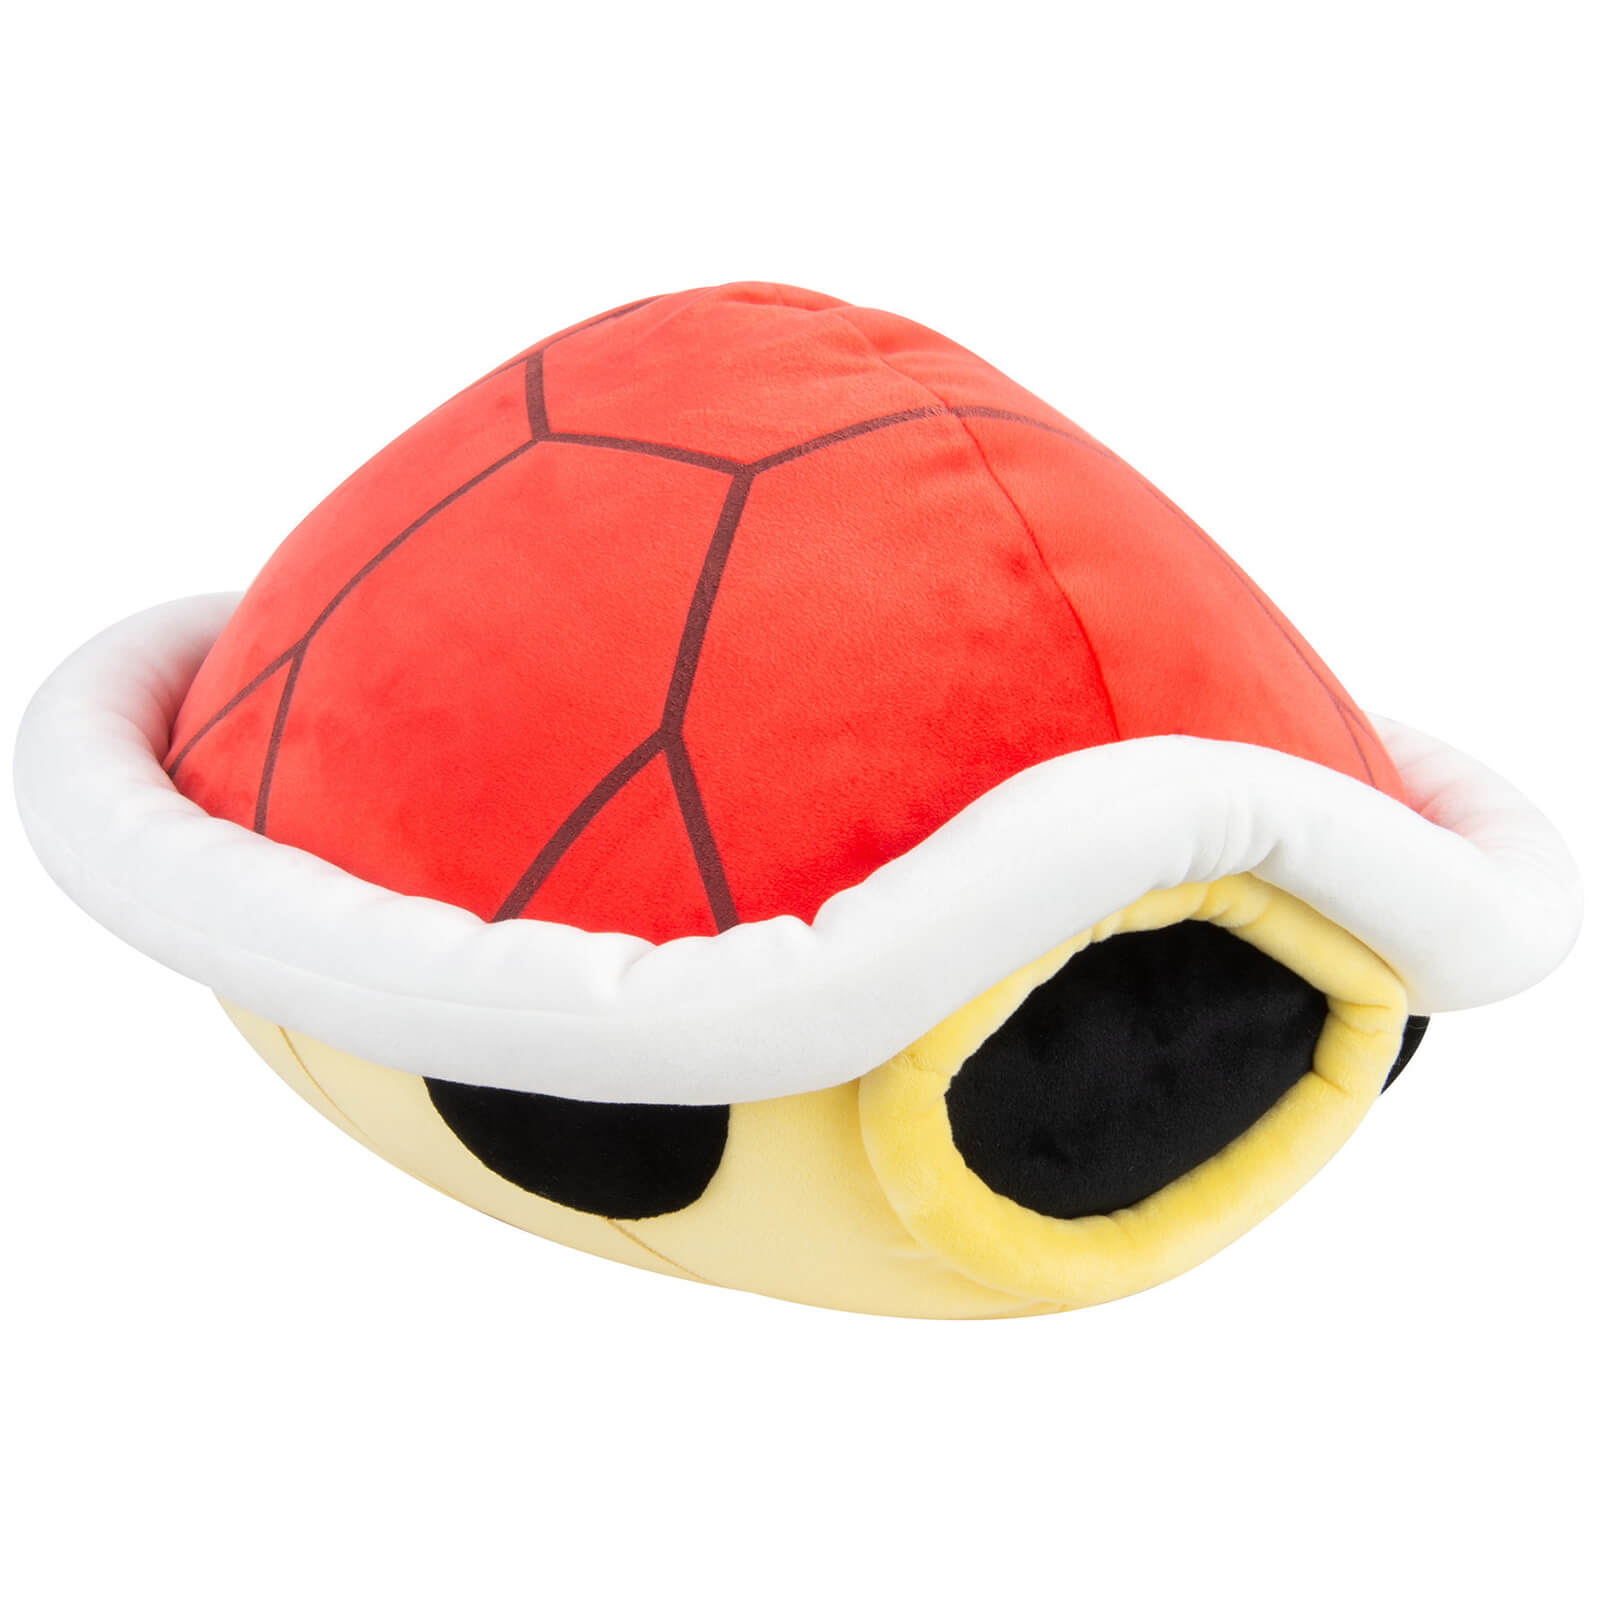 Image of Mario Kart Large Plush Red Shell Toy